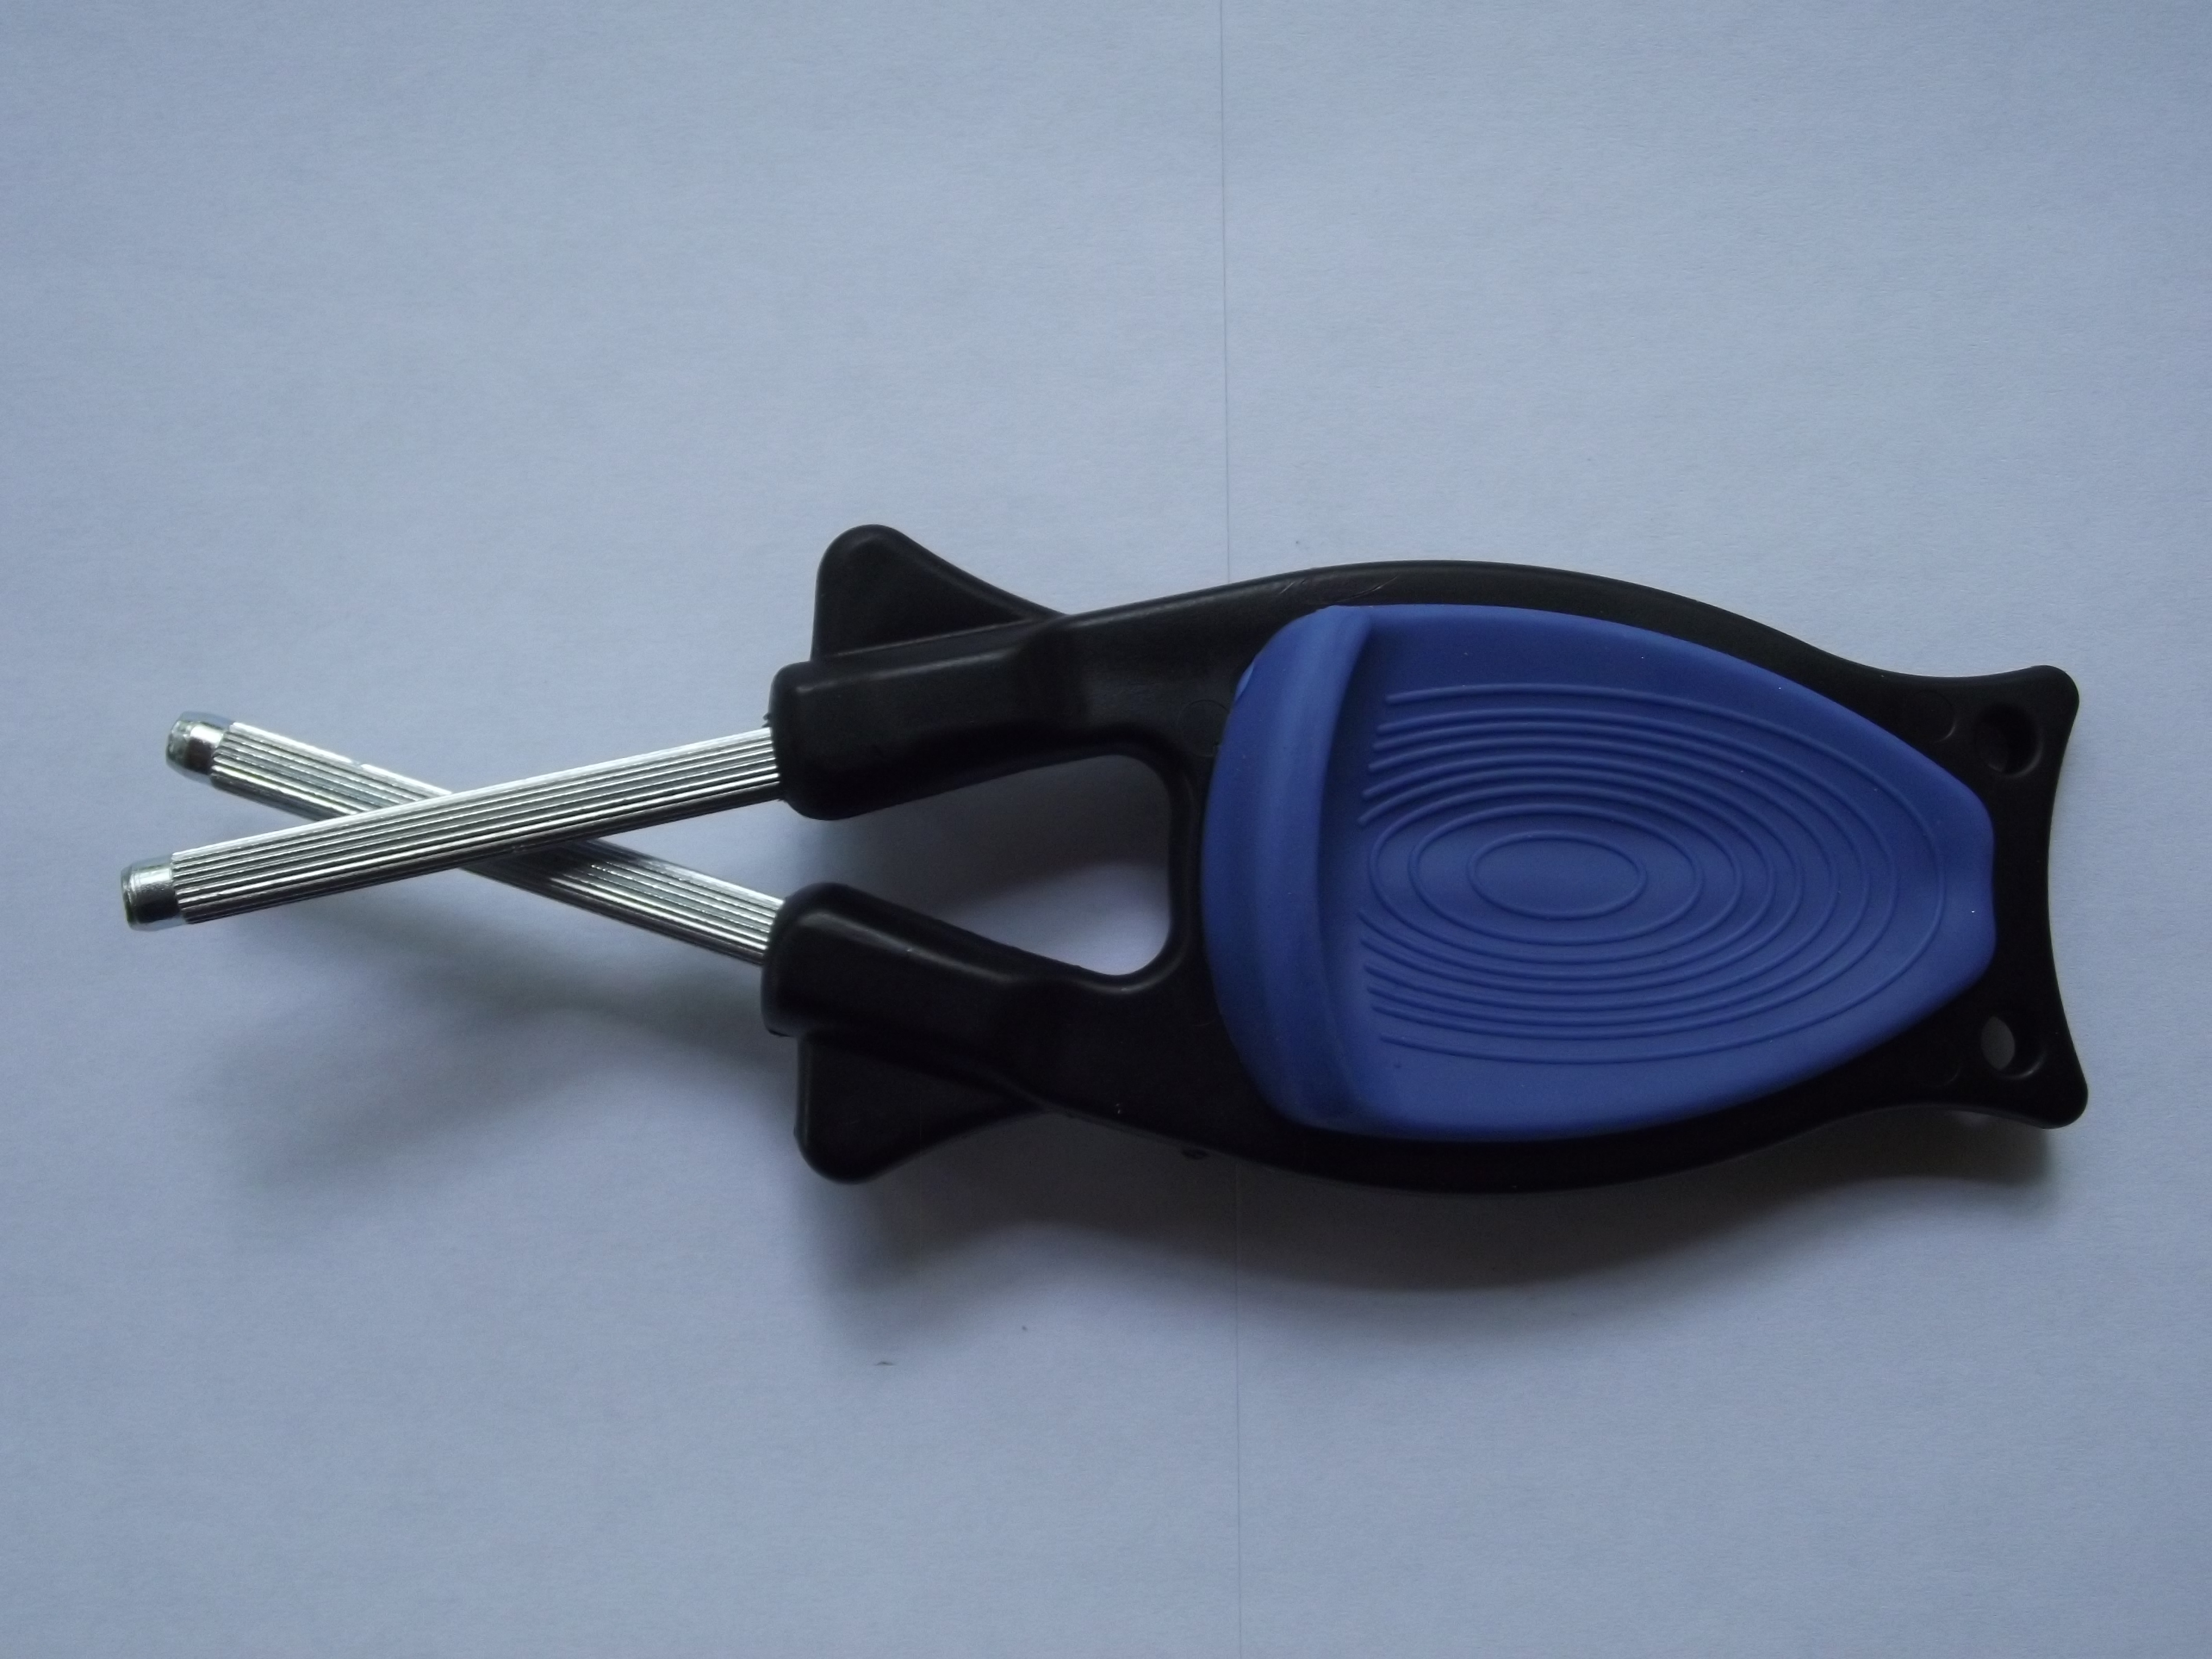 Block sharpener with a black handle and blue grip